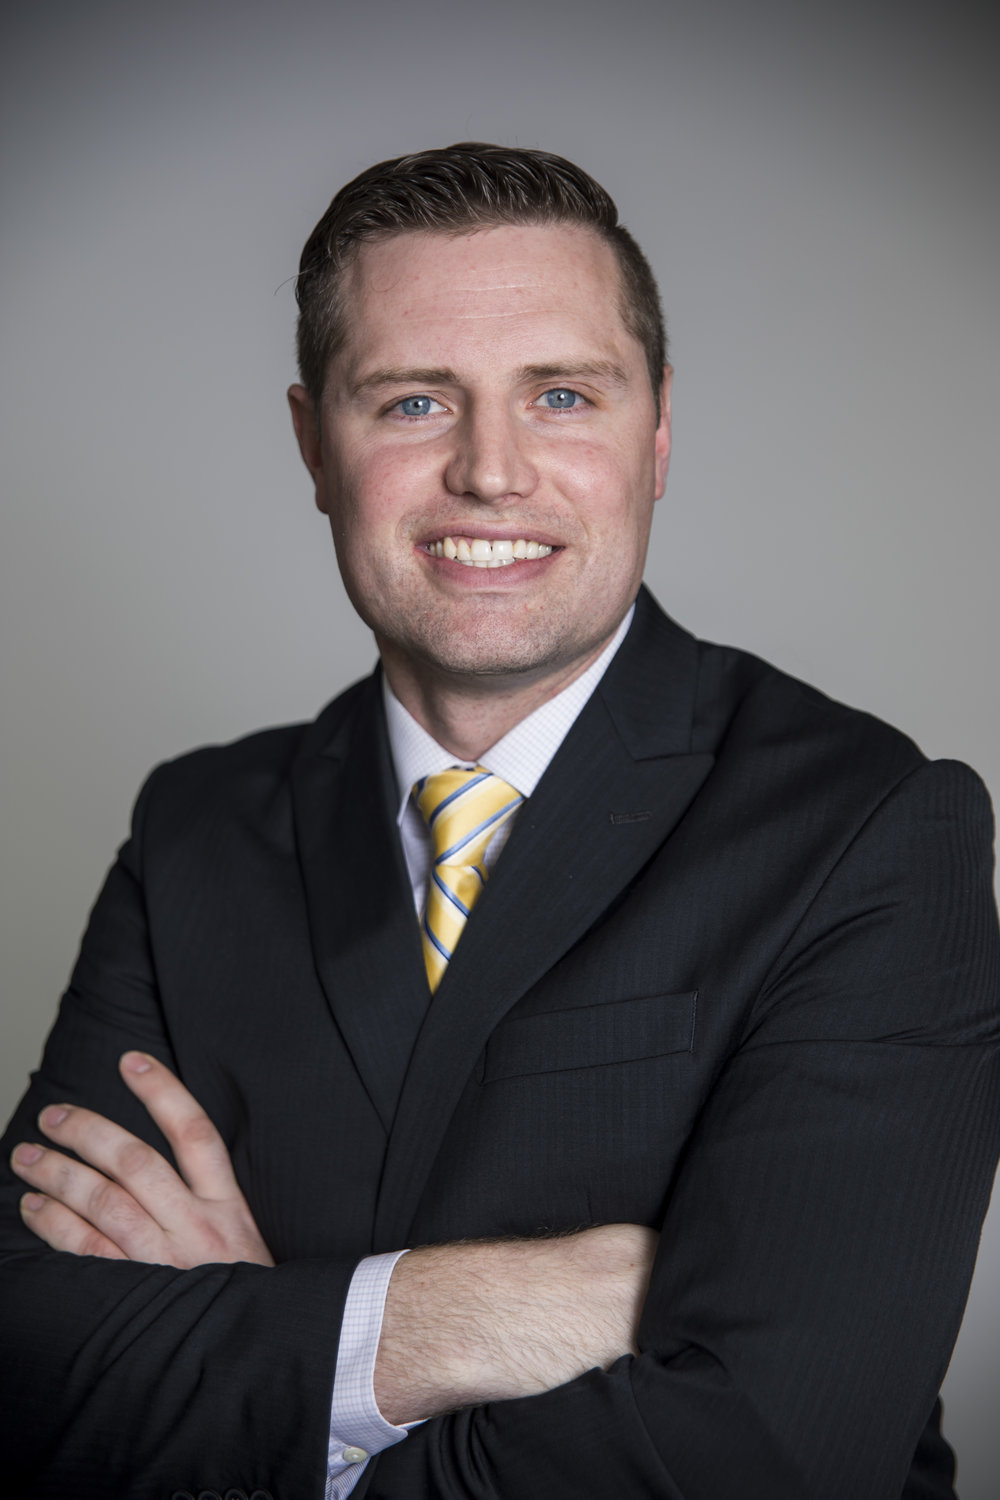 BRET ALLEN - Allen Law Firm PLLC was founded in 2016 by Bret Allen. Bret is a Real Estate and Business Attorney, licensed REALTOR® in Texas, Real Estate Investor and Entrepreneur. Allen Law Firm serves the residents and businesses of Collin County, Dallas County and other areas across DFW with a focus on real estate, business, probate, and litigation.